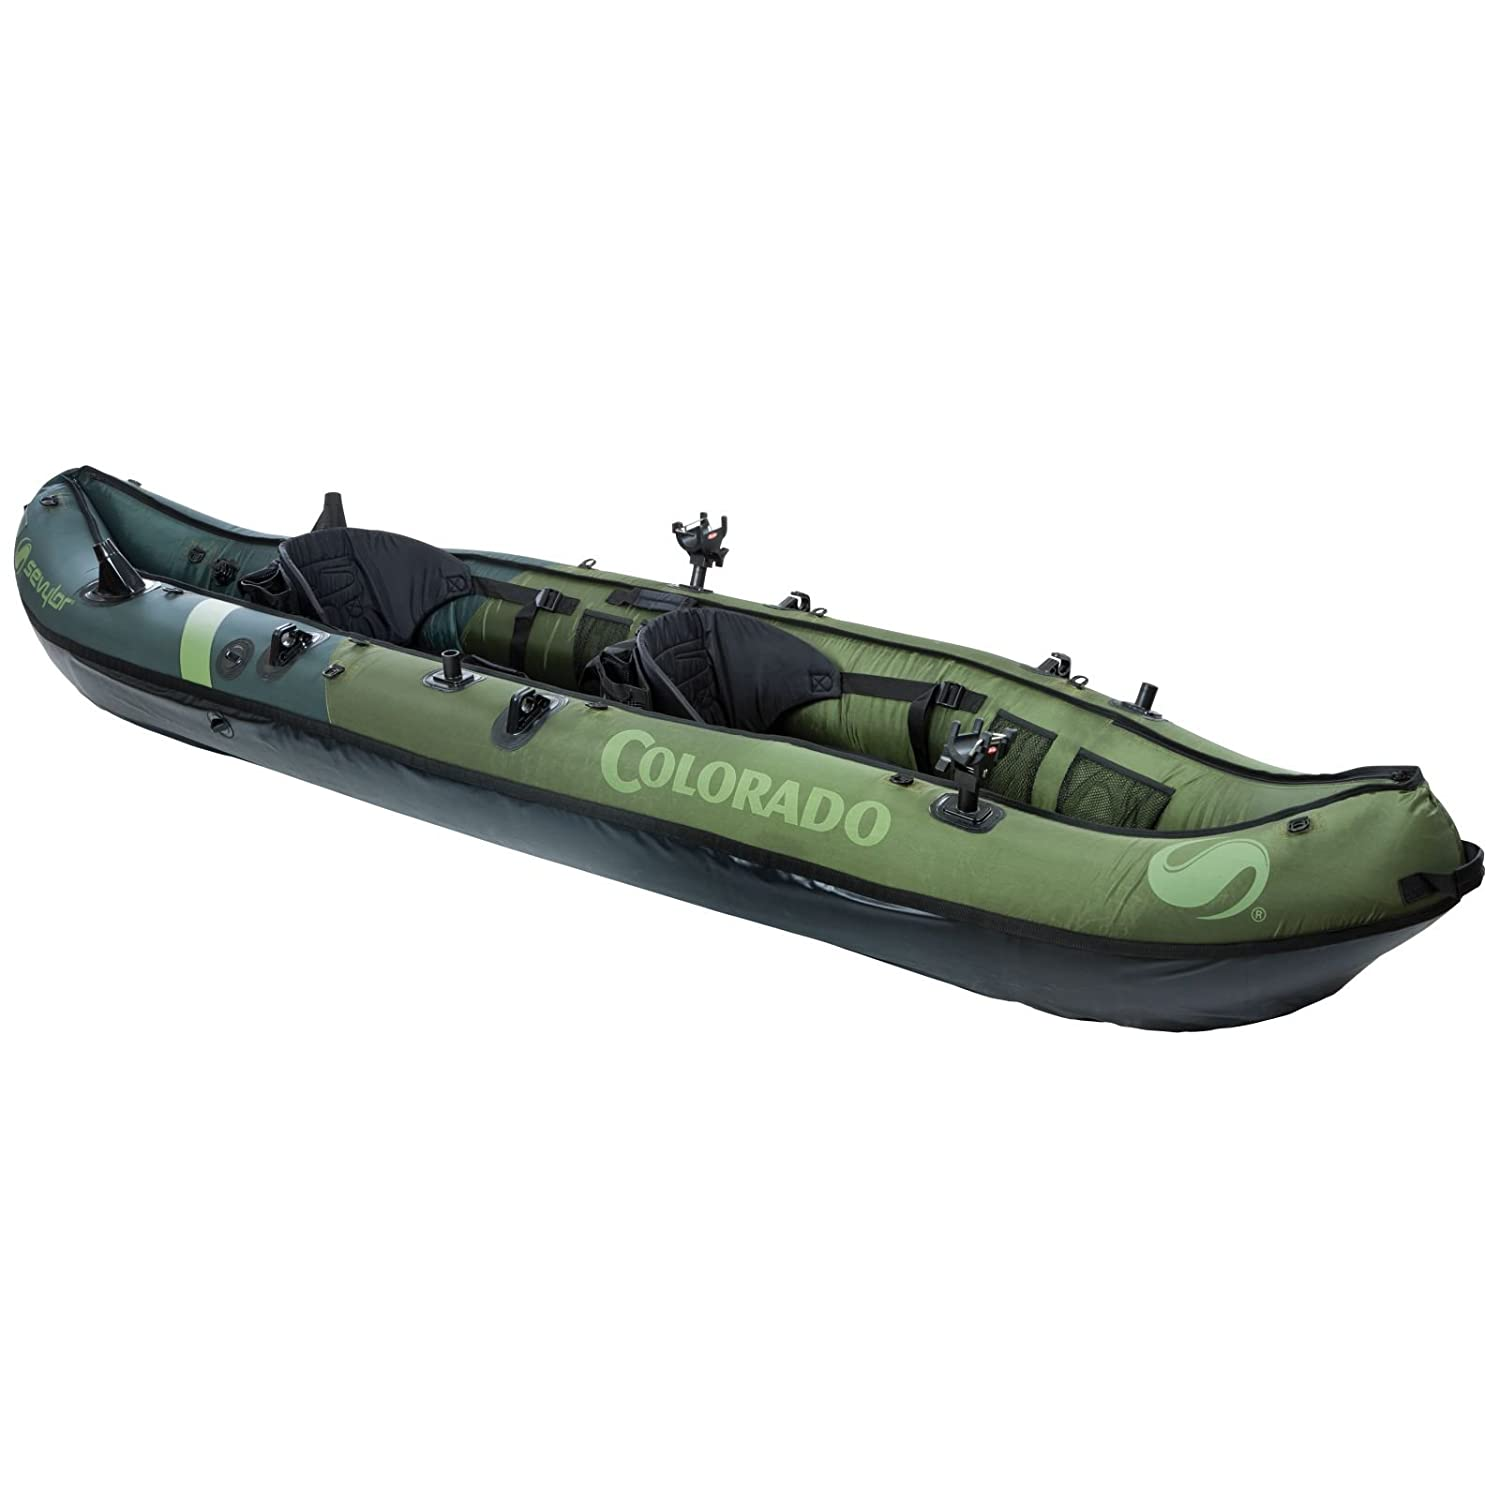 Coleman Colorado 2-Person Fishing Kayak